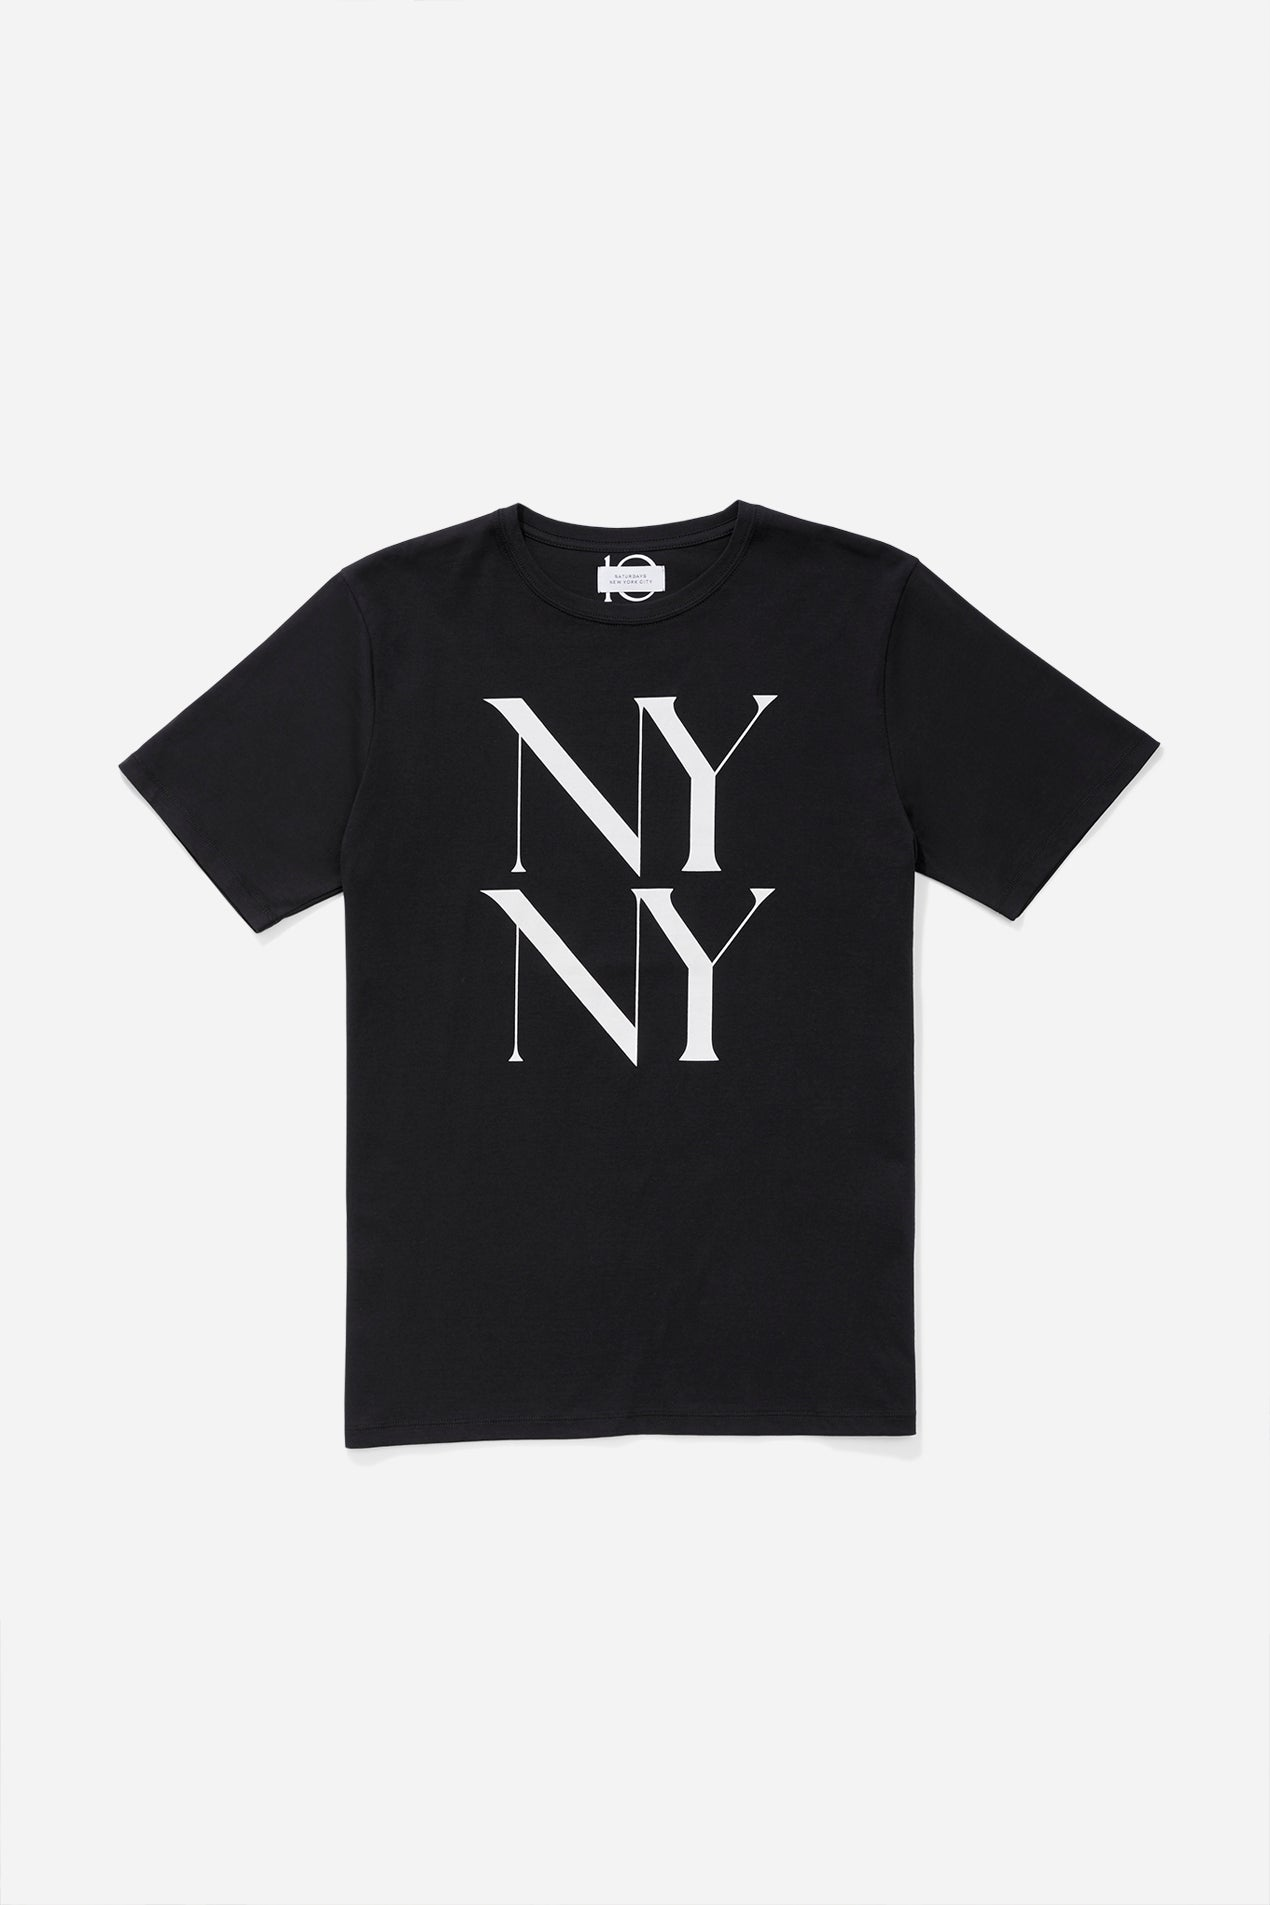 NY NY Multi-Color T-Shirt